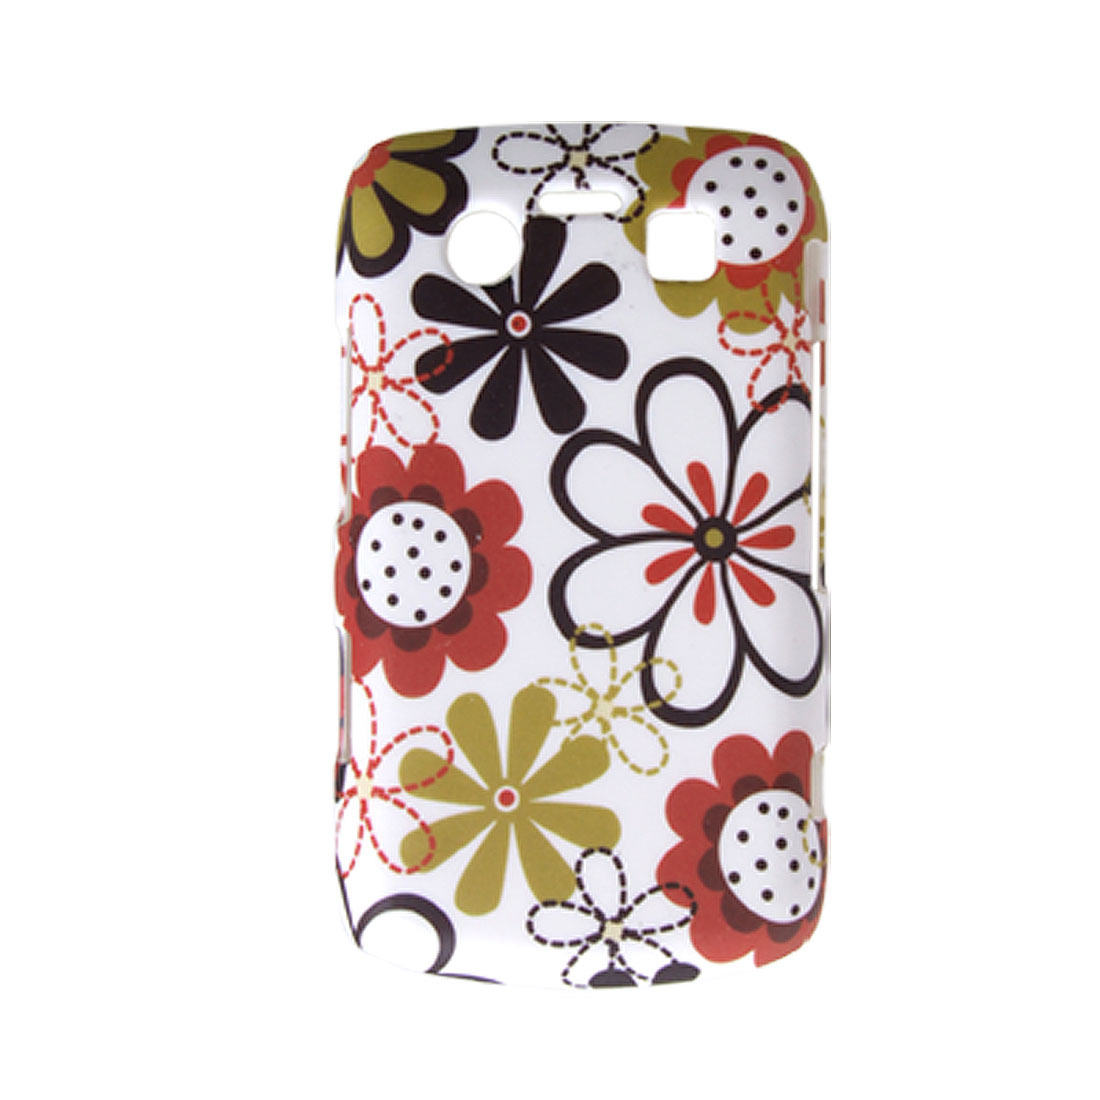 White Hard Case Rubberized Flower Cover for BlackBerry 9700